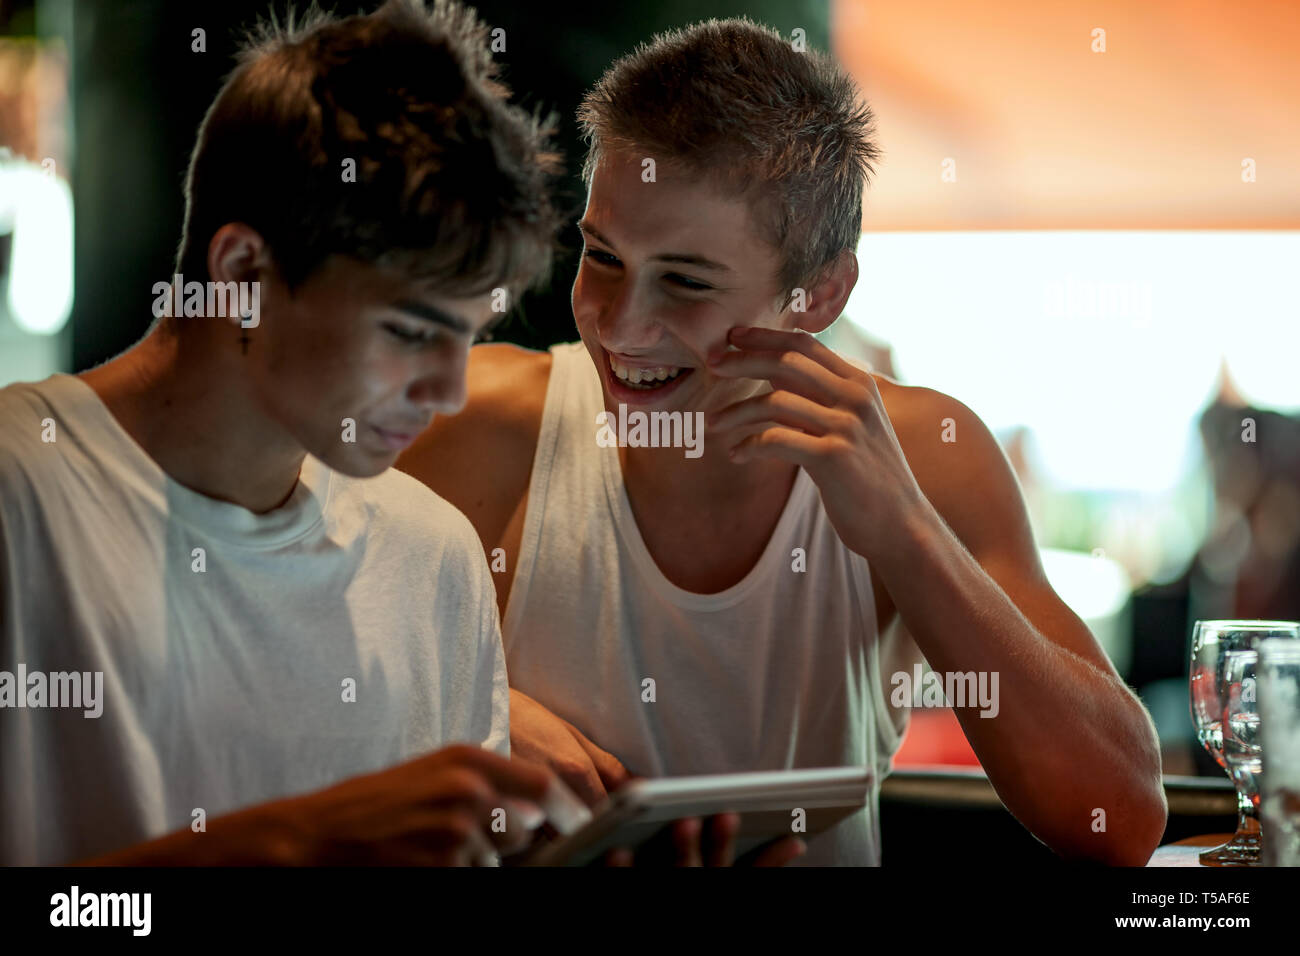 Young boys in a cafe - Stock Image